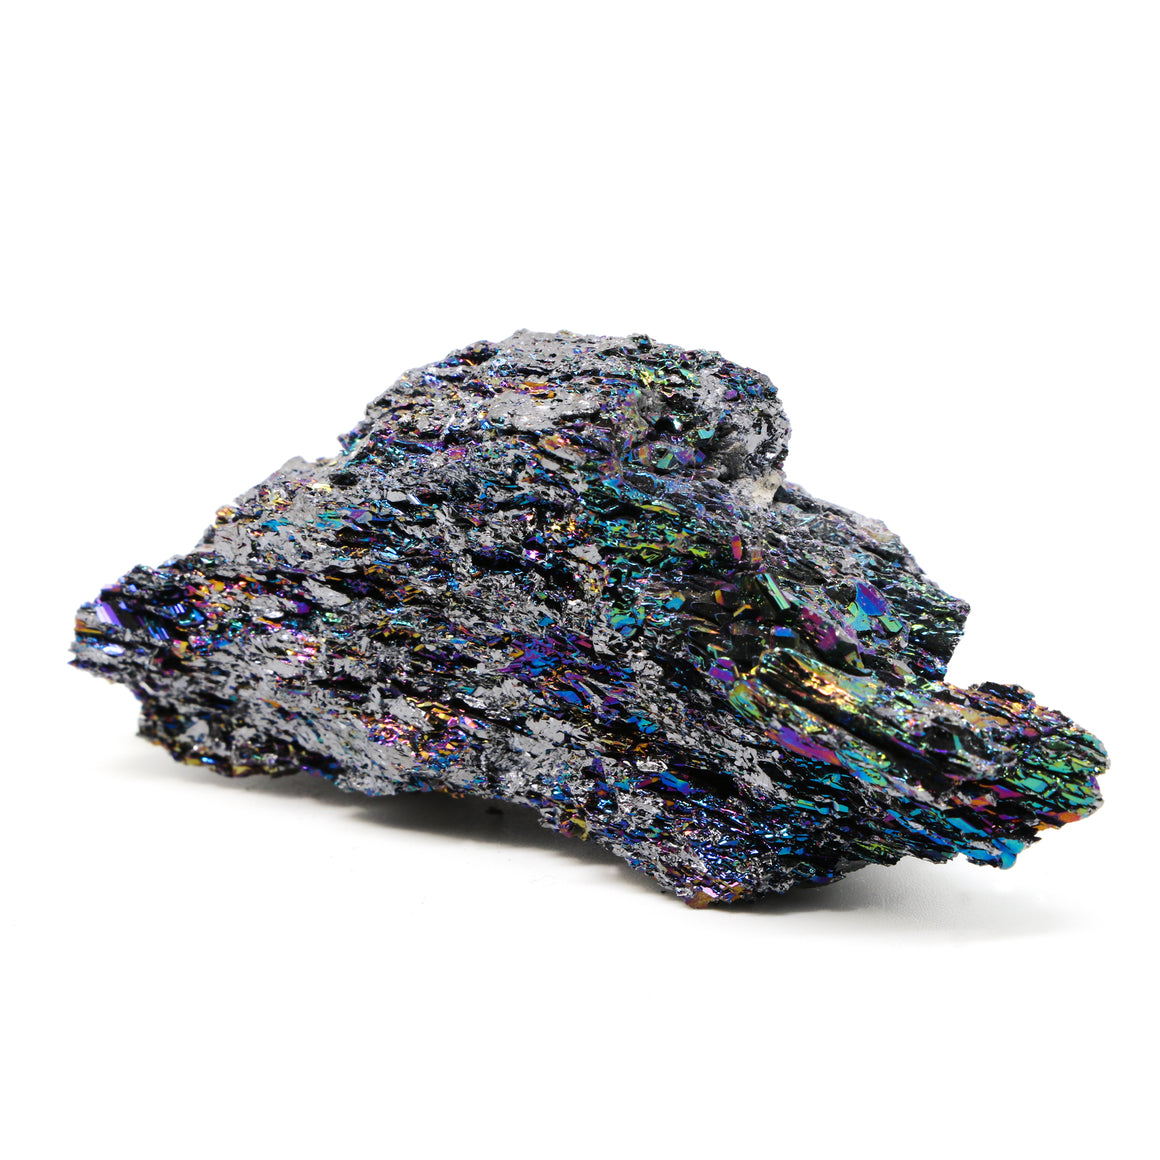 Carborundum Crystal